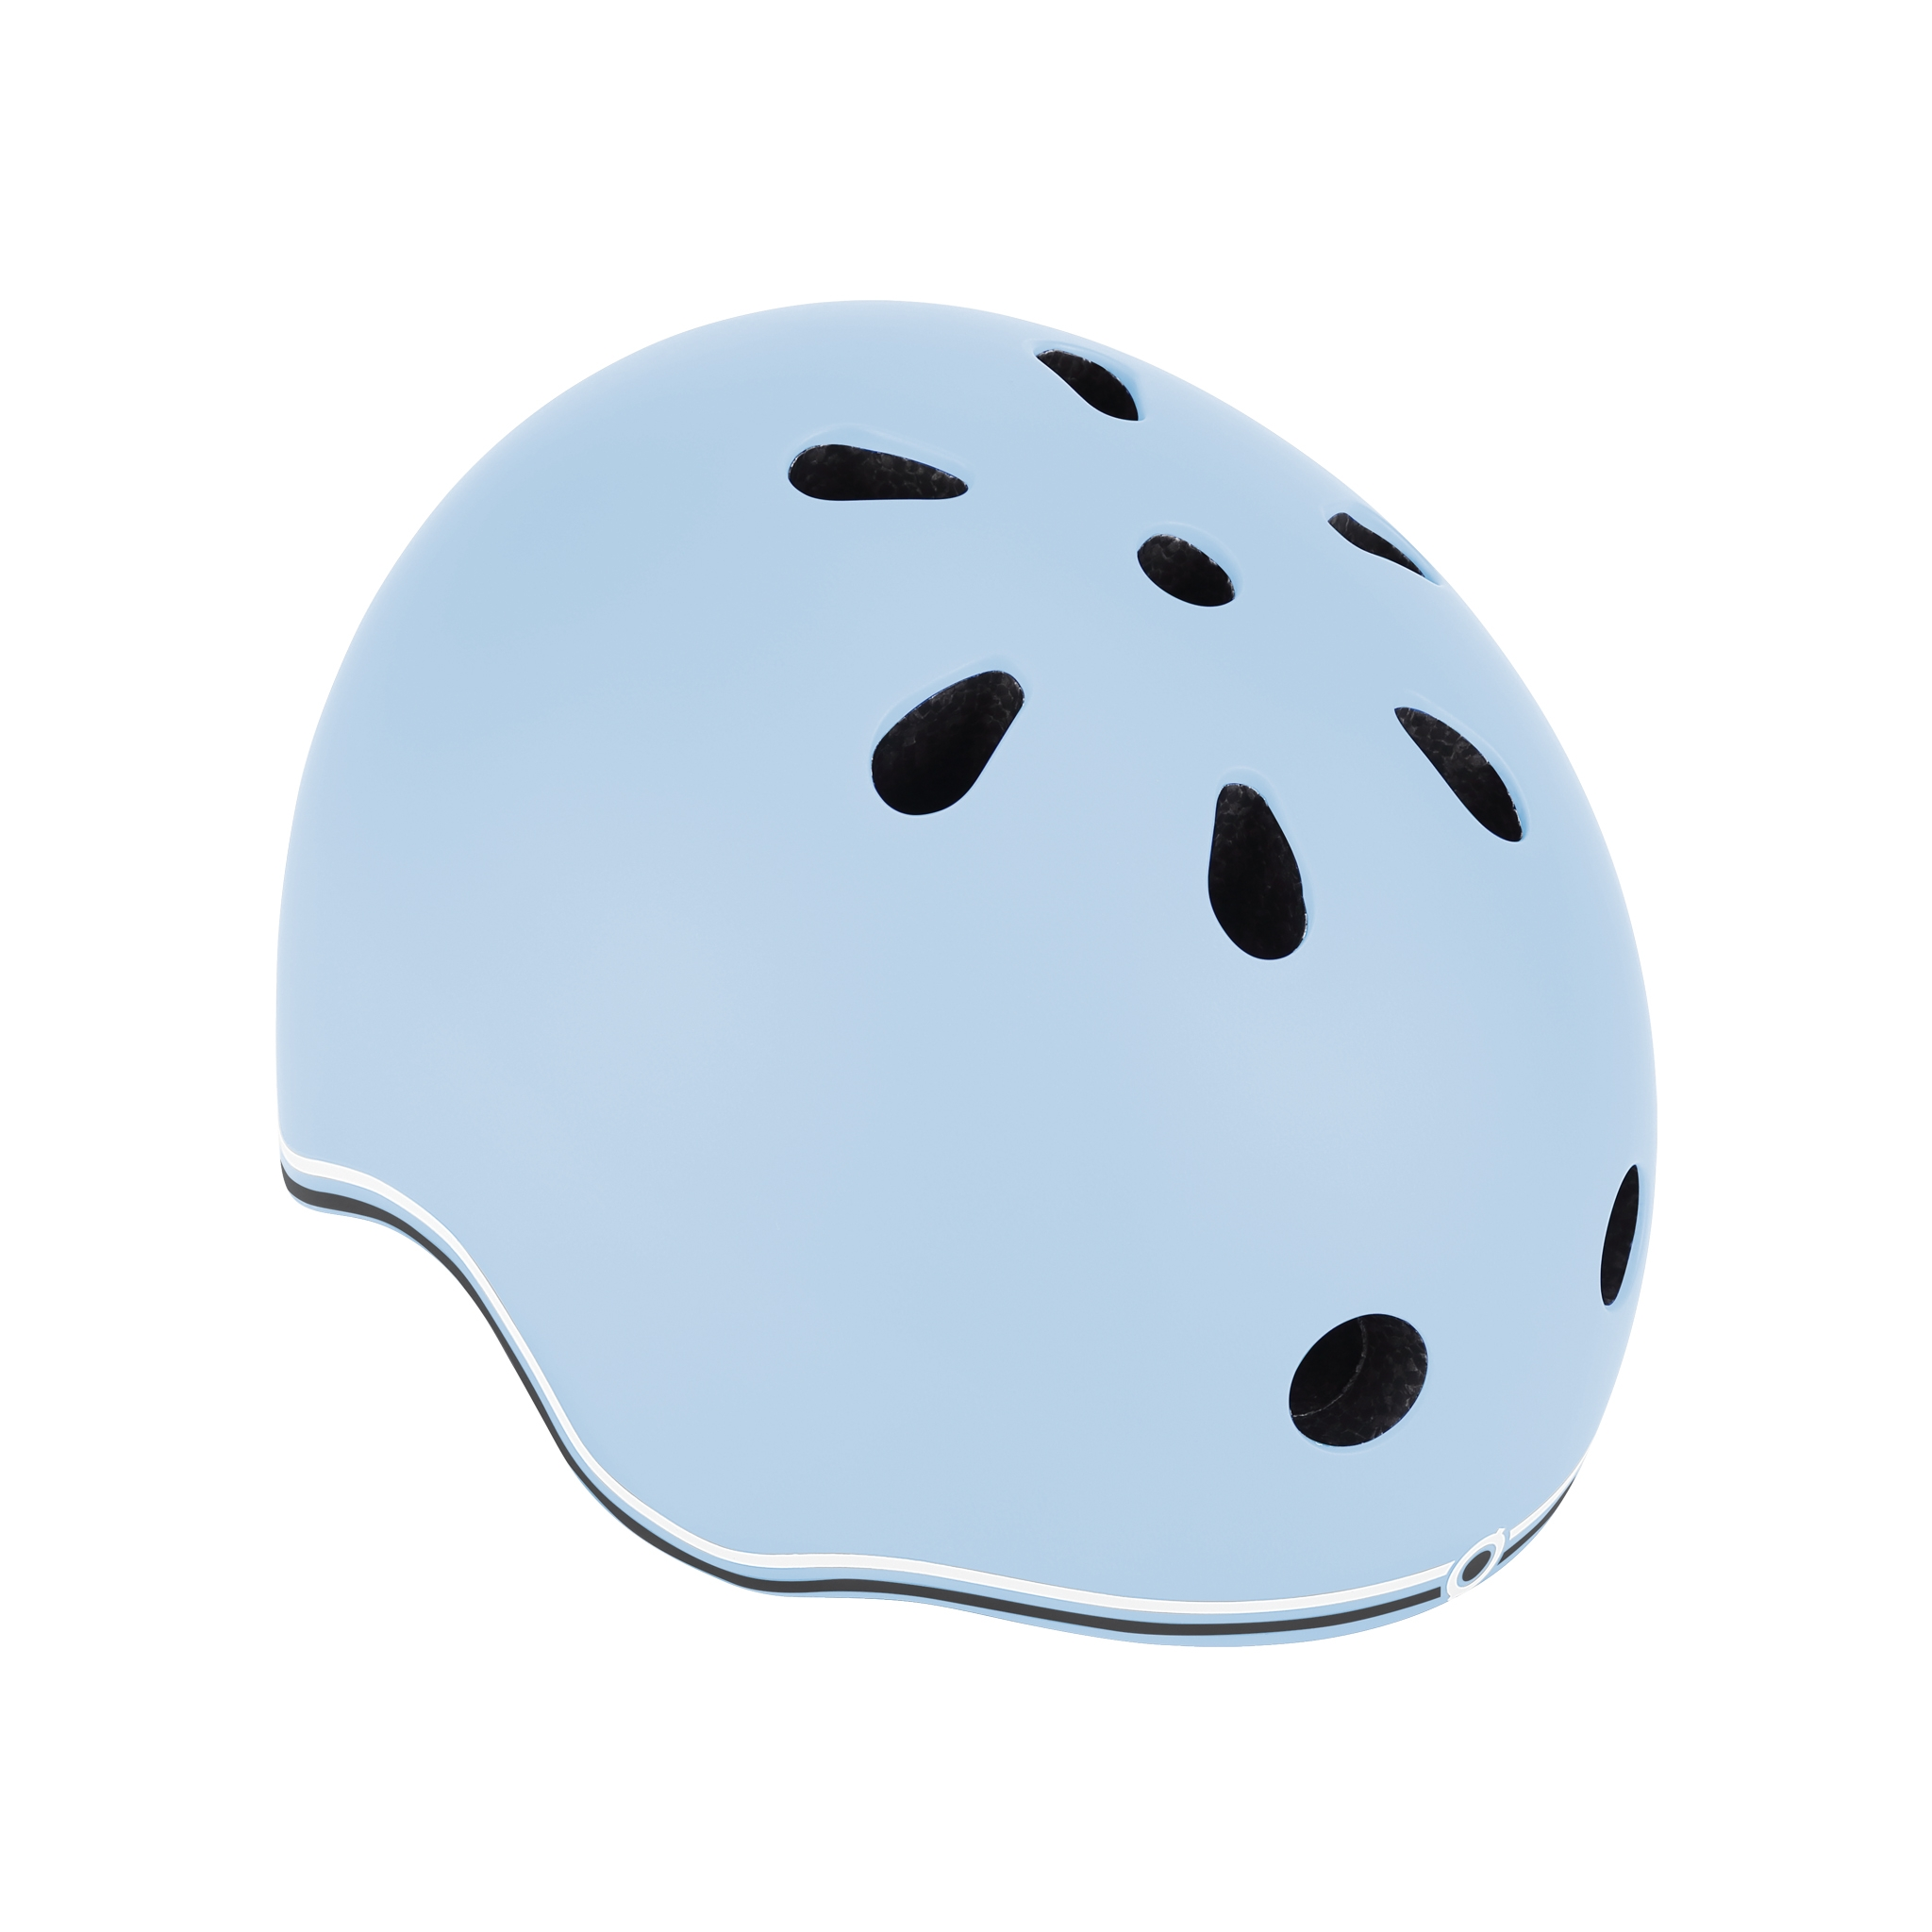 GO-UP-helmets-scooter-helmets-for-toddlers-in-mold-polycarbonate-outer-shell-pastel-blue 0